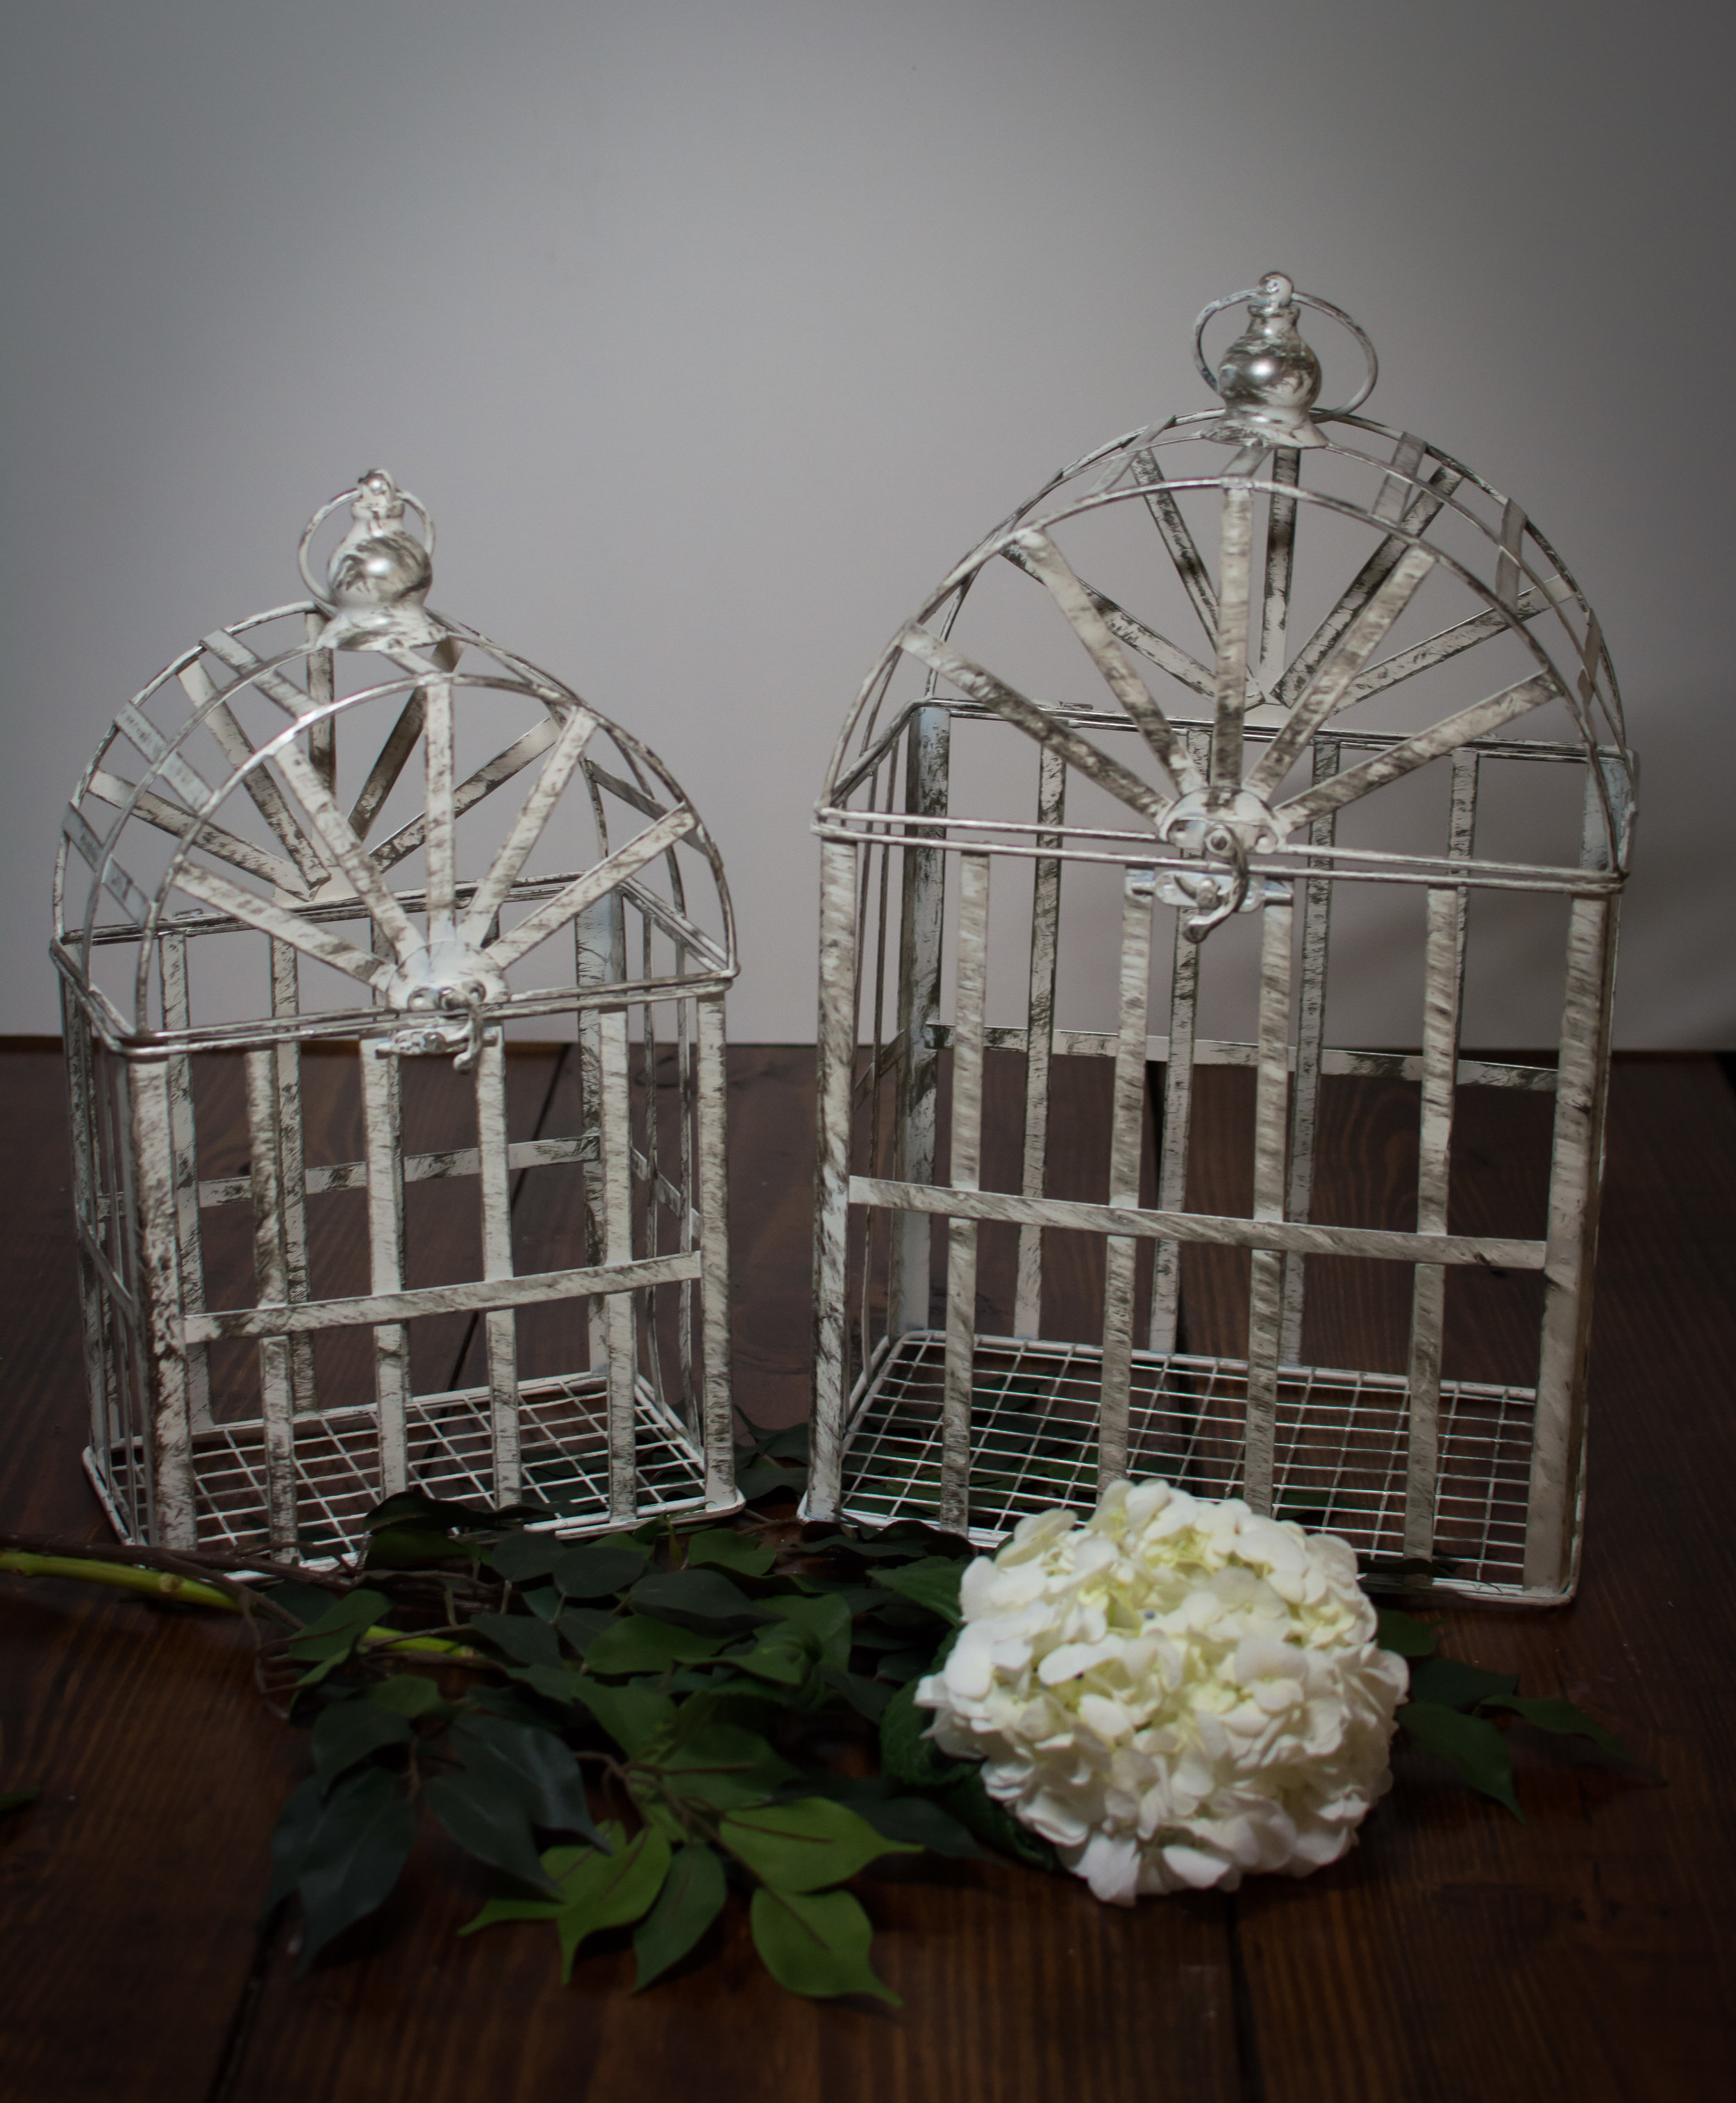 Set of 2 distressed white birdcages   Price: $22.00/ $12.00 large, $10 Small  Inquire about quantity and availability